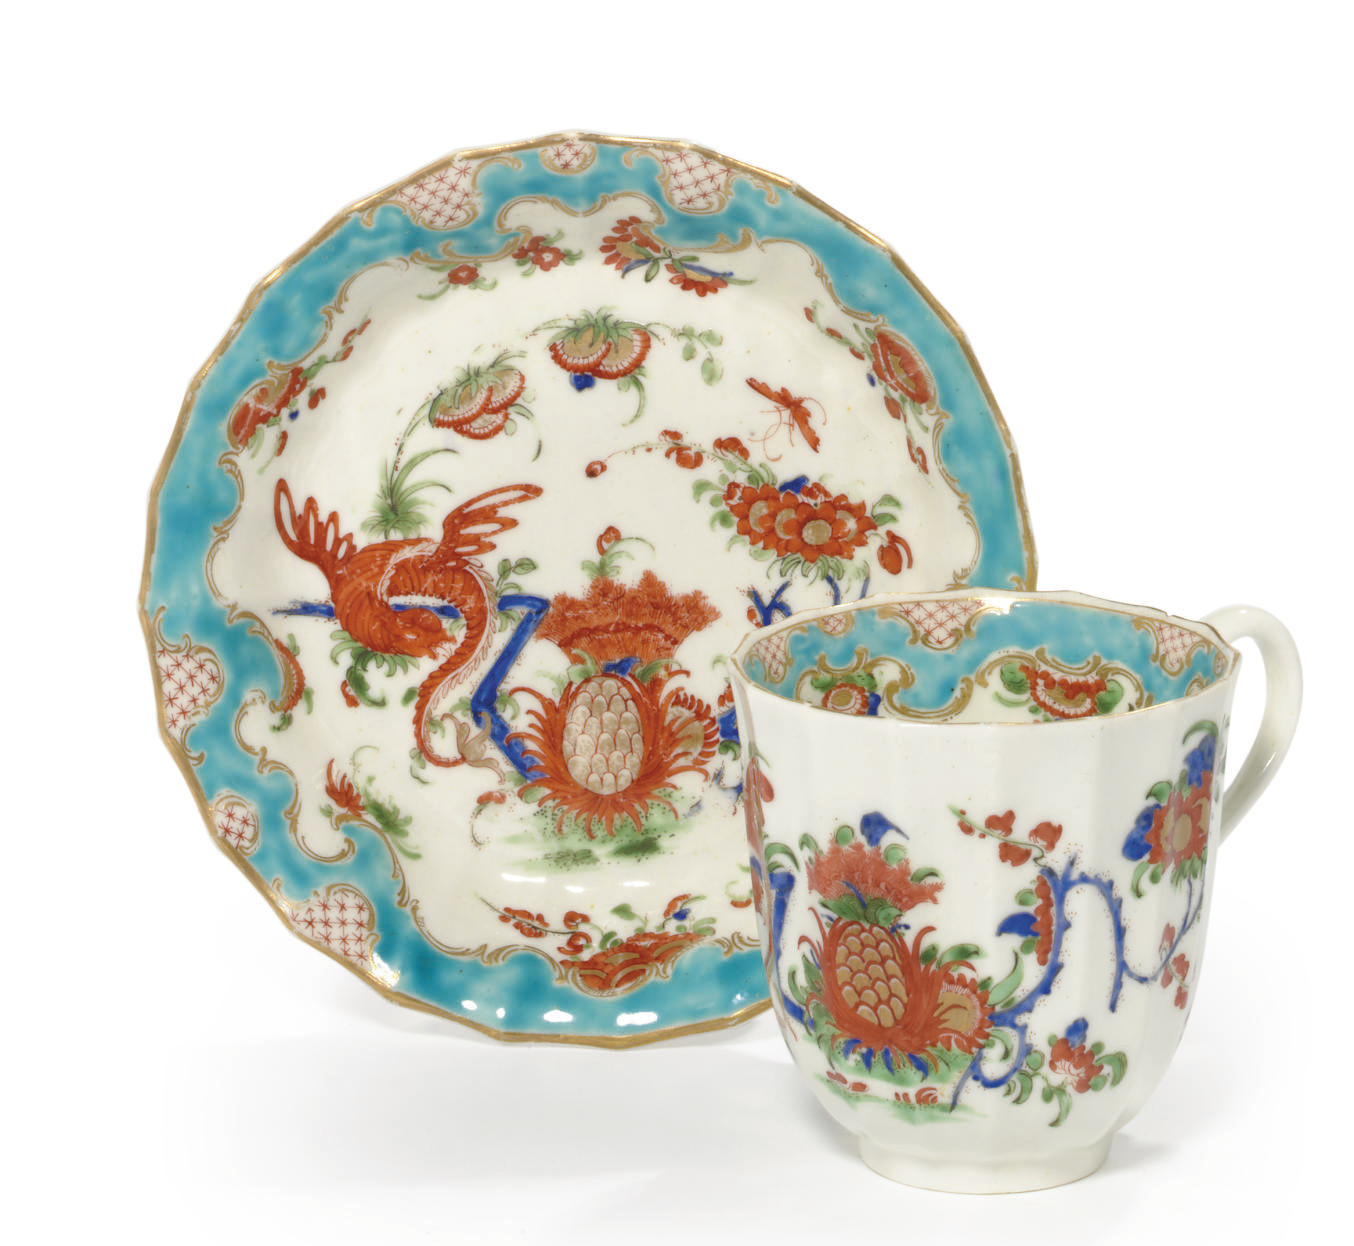 A WORCESTER CUP AND SAUCER